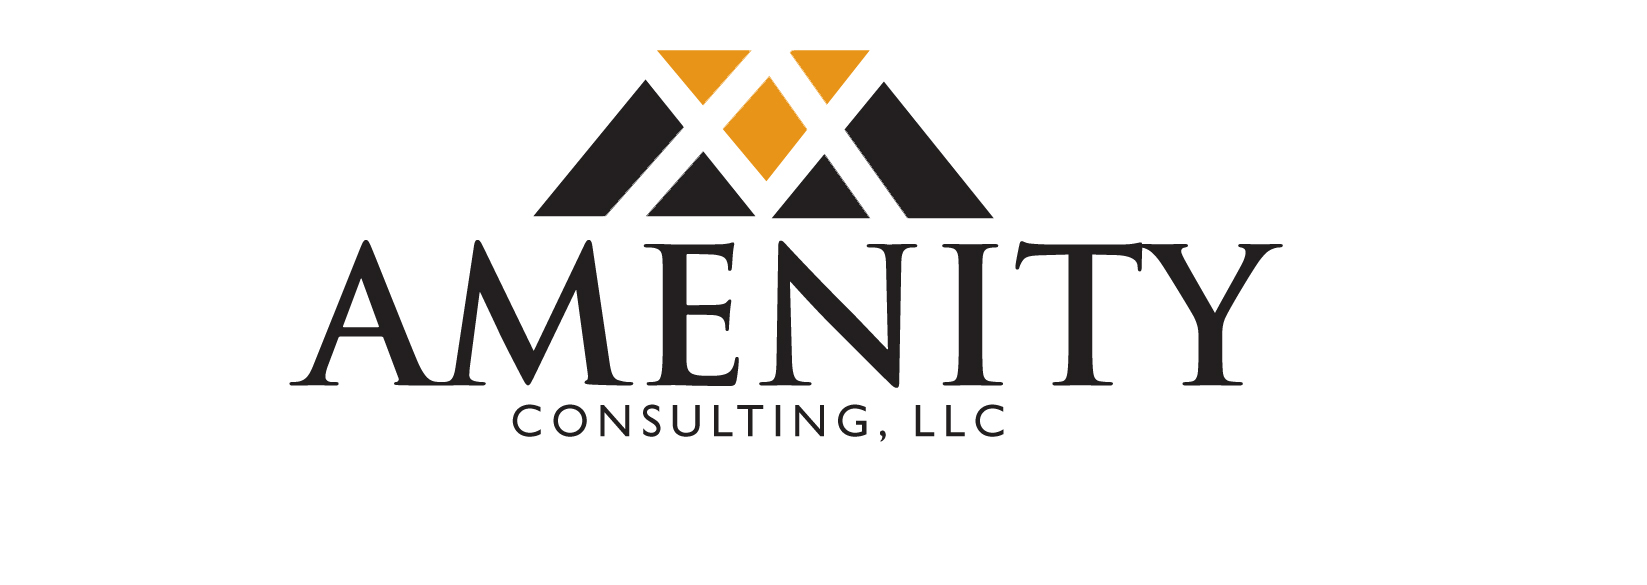 amenity consulting jobs part time telecommuting or flexible current flexible jobs at amenity consulting